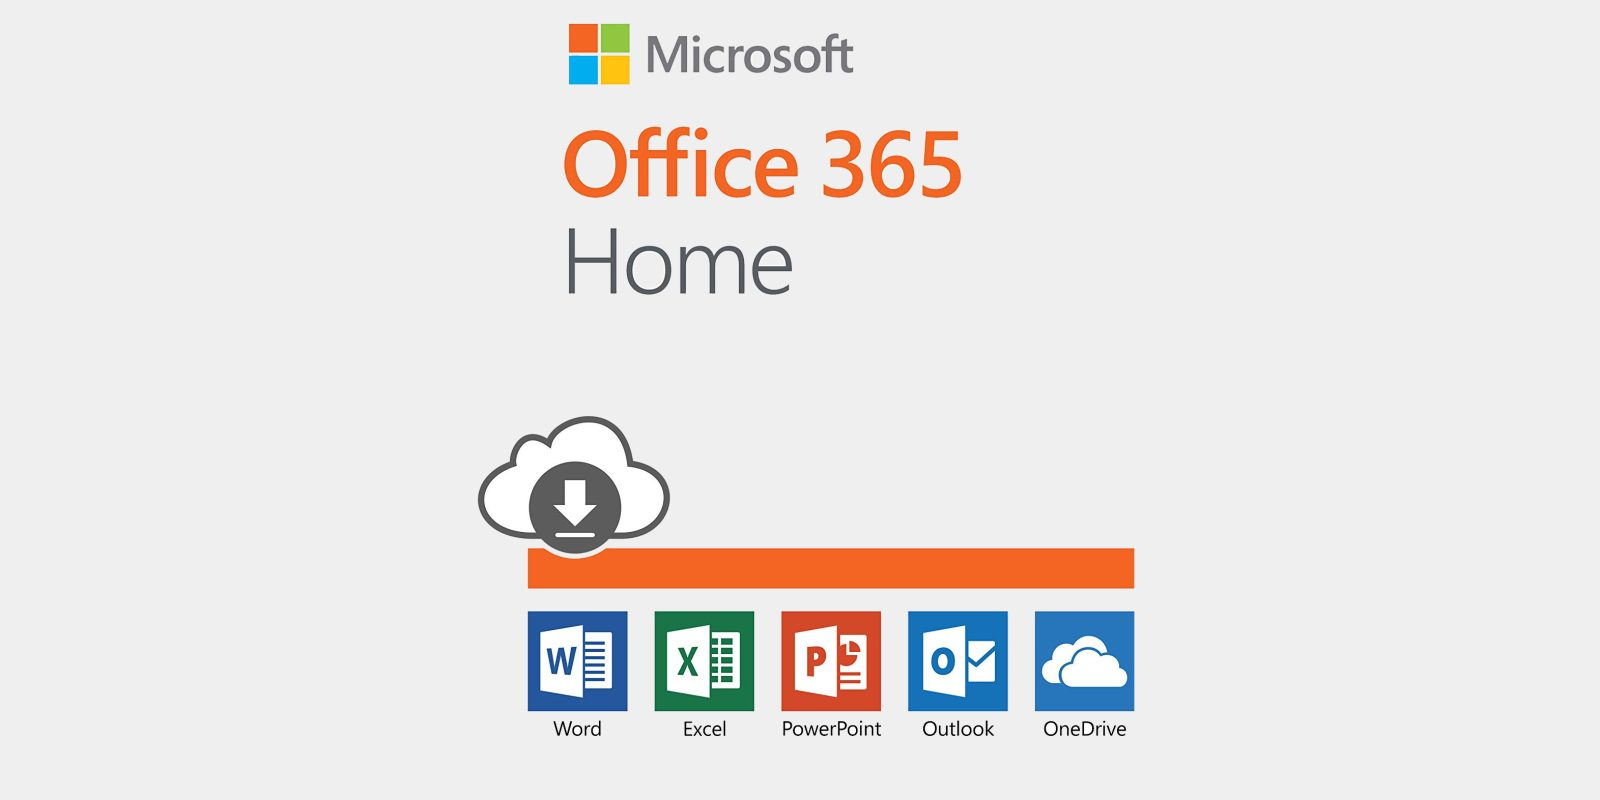 Get a $50 Amazon gift card with 12-mo. Microsoft Office 365 purchase for $100